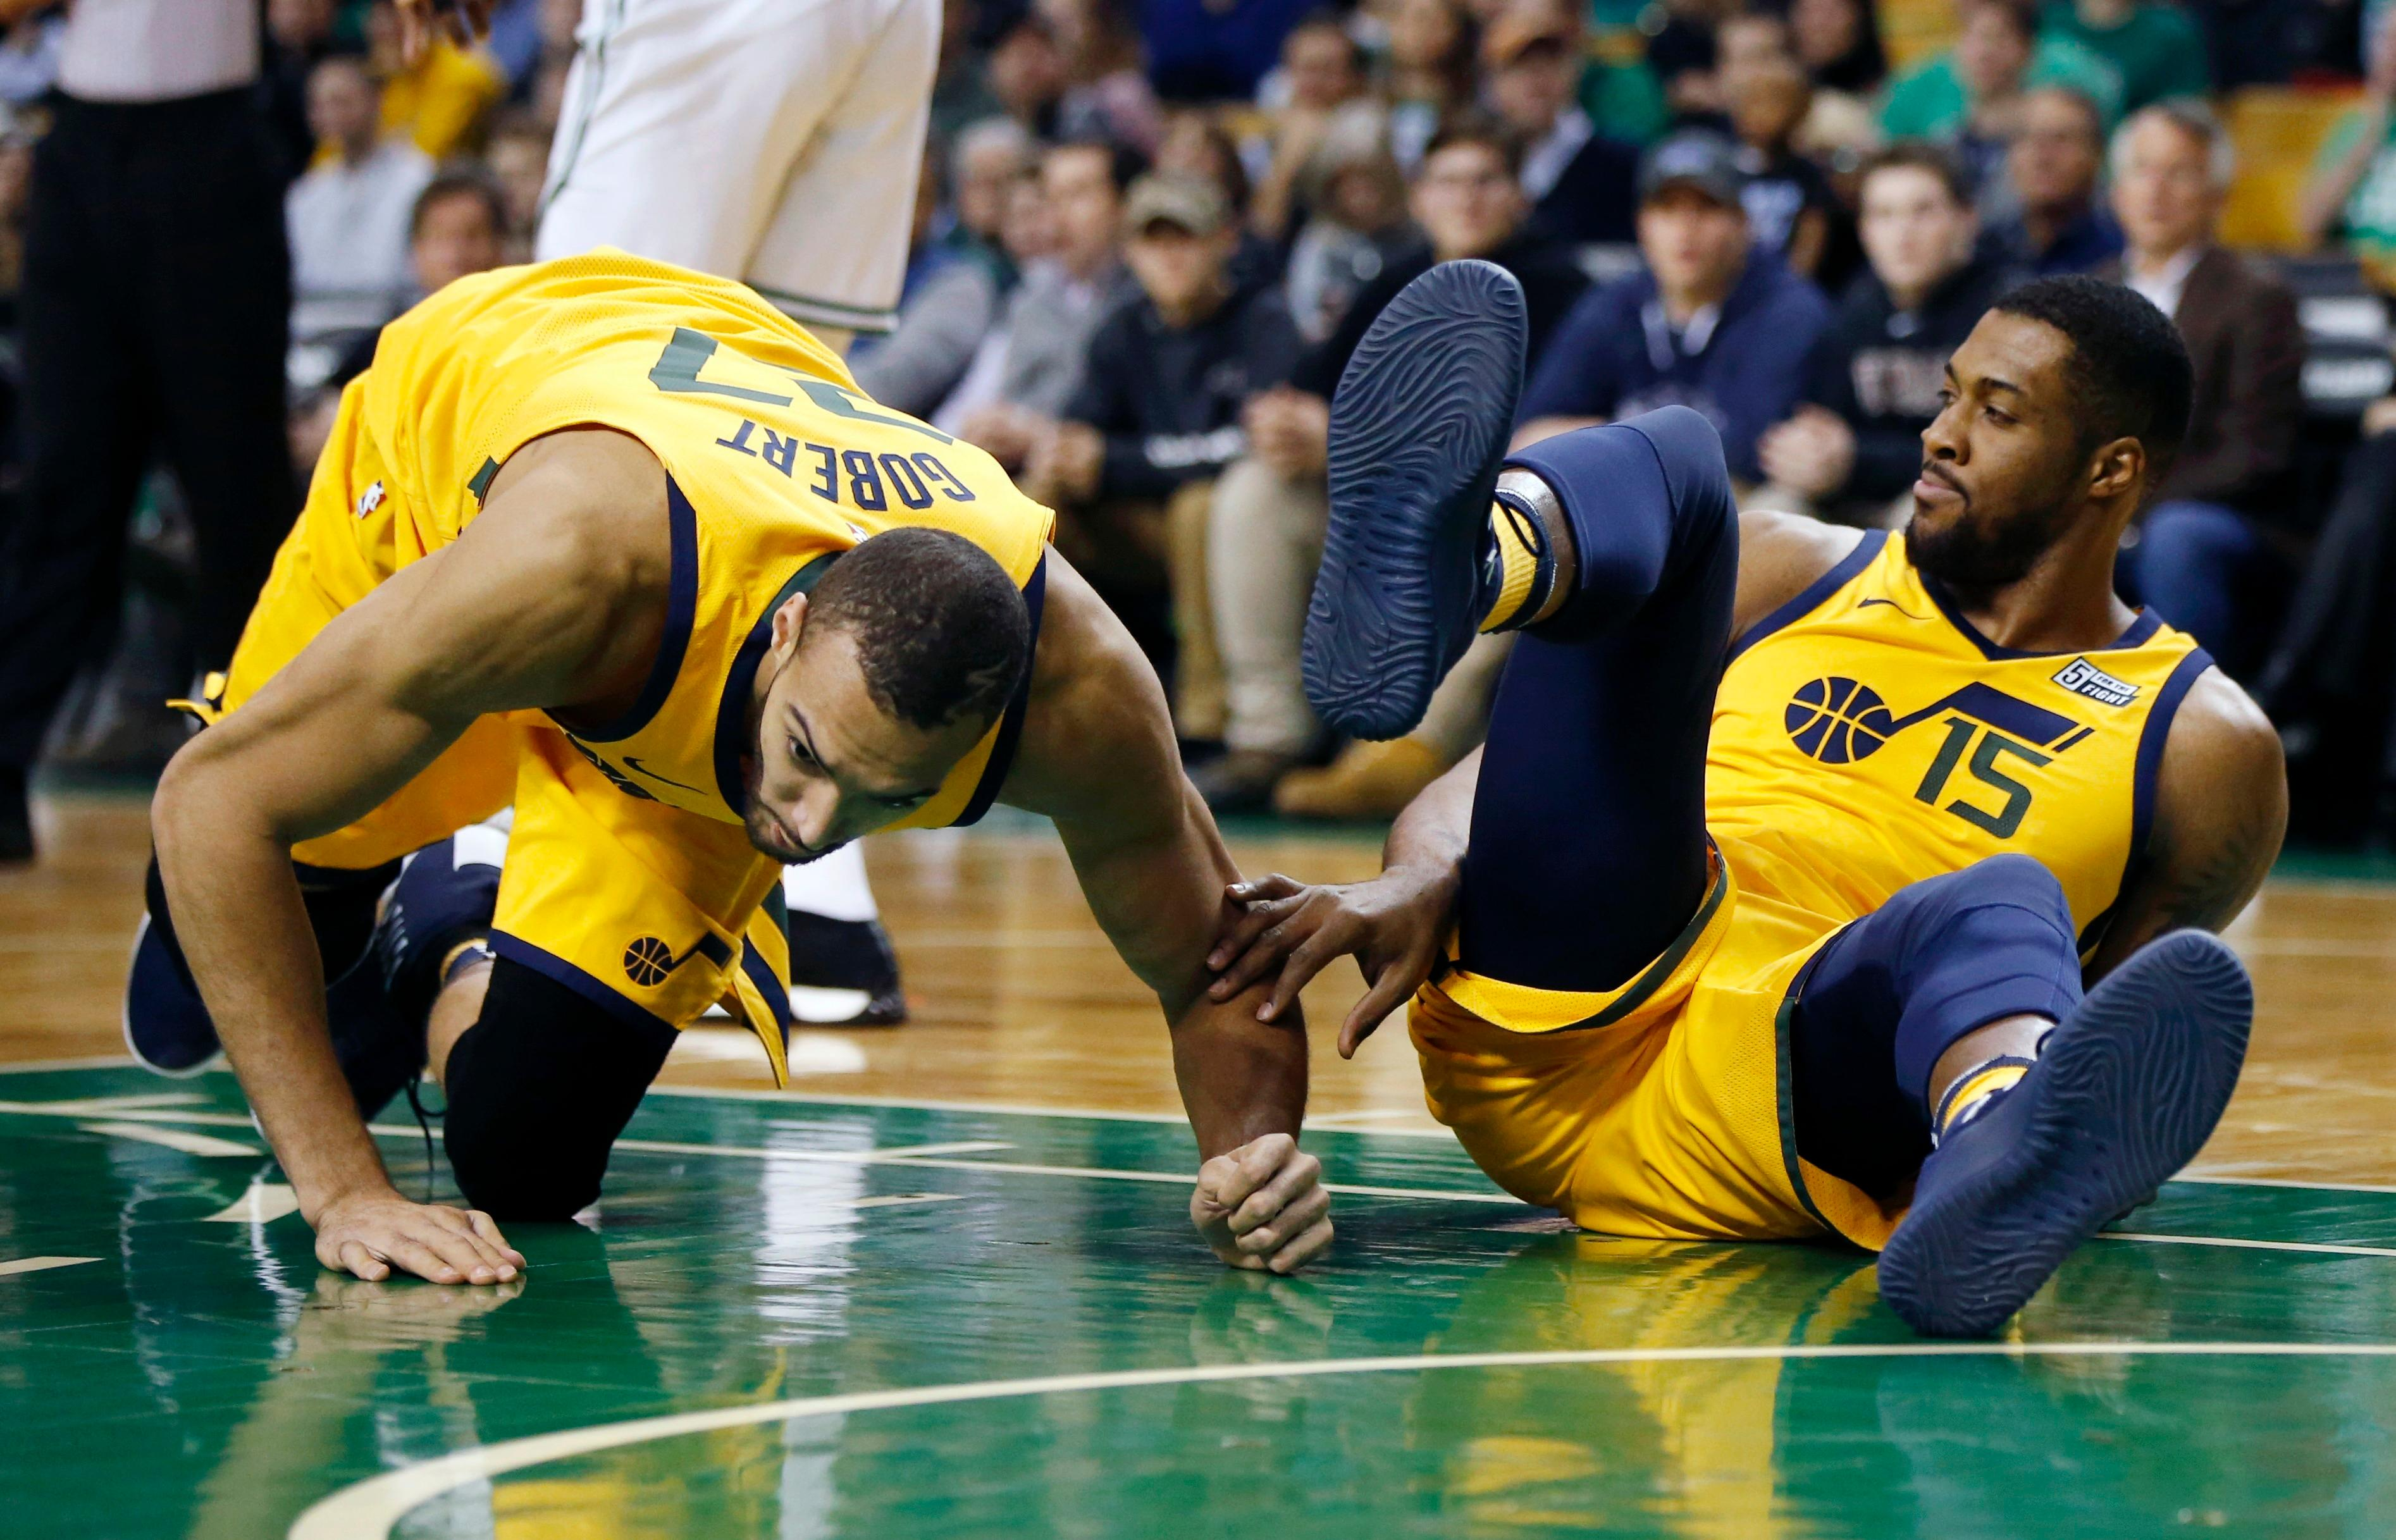 Utah Jazz's Rudy Gobert (27) kneels on the floor beside teammate Derrick Favors (15) during the first quarter of an NBA basketball game against the Boston Celtics in Boston, Friday, Dec. 15, 2017. Gobert left the game with a knee injury after Favors fell backward into his leg on the play. (AP Photo/Michael Dwyer)